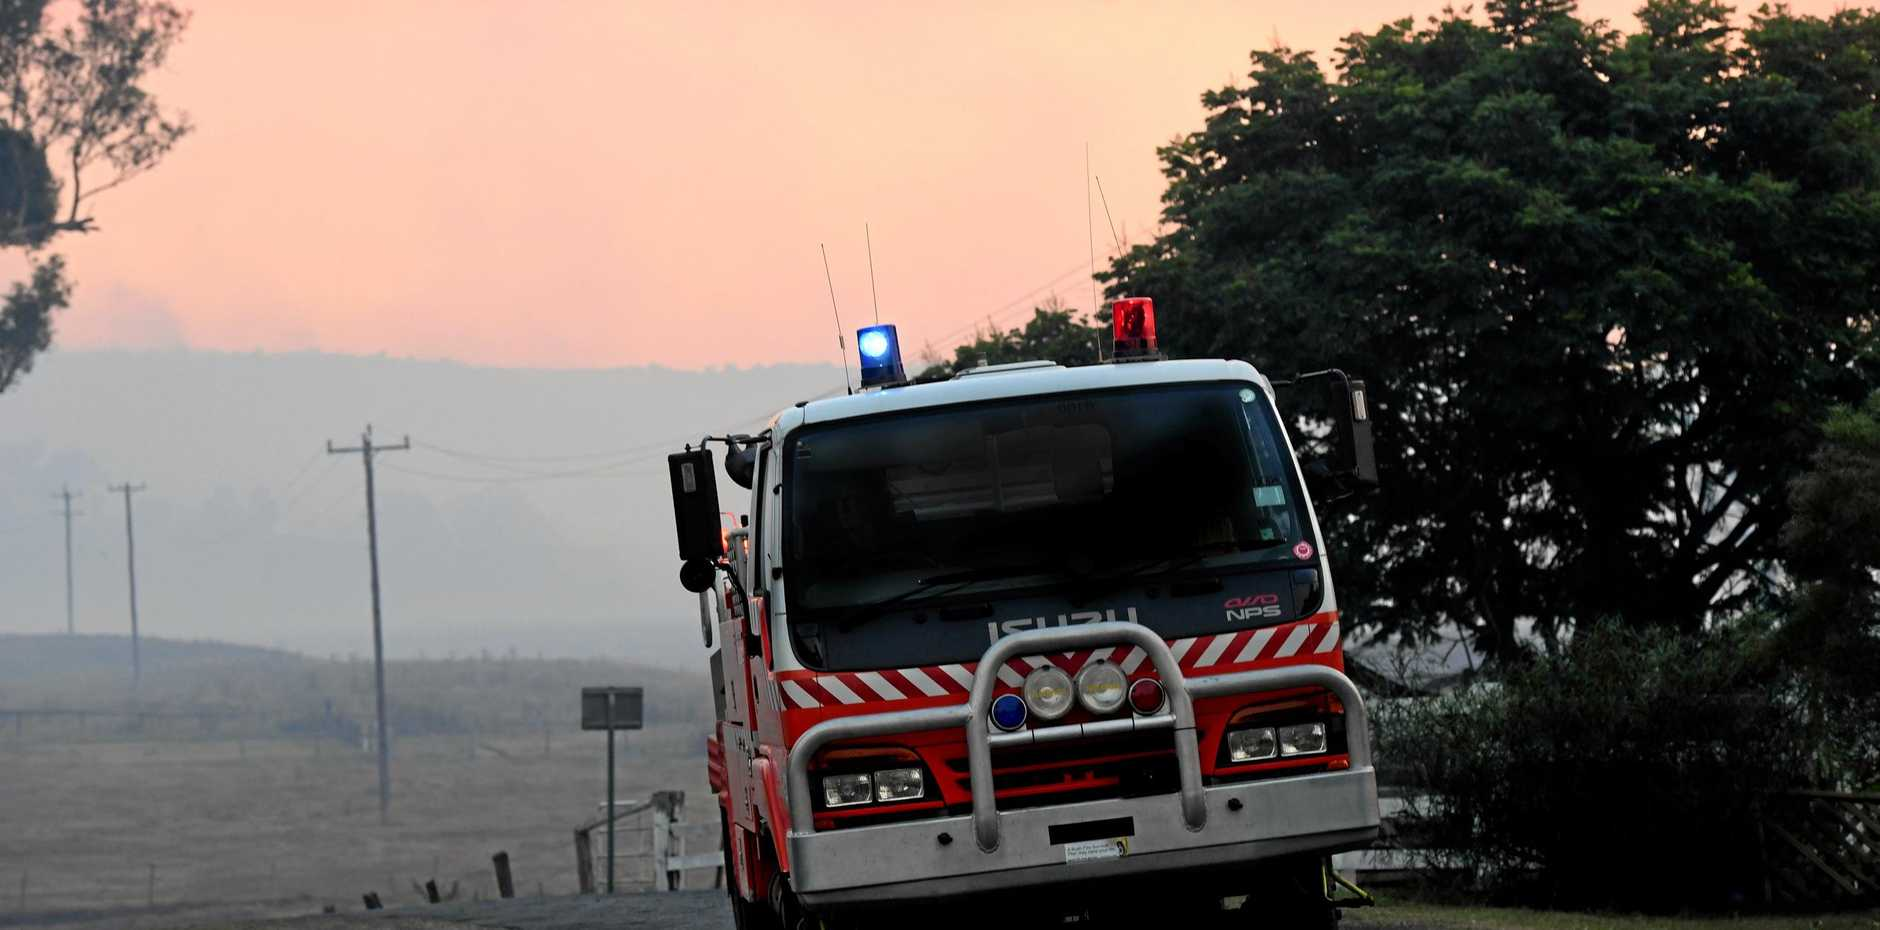 HOUSE FIRE: The second storey of a Queenslander-style home in Laidley has been engulfed by flames.